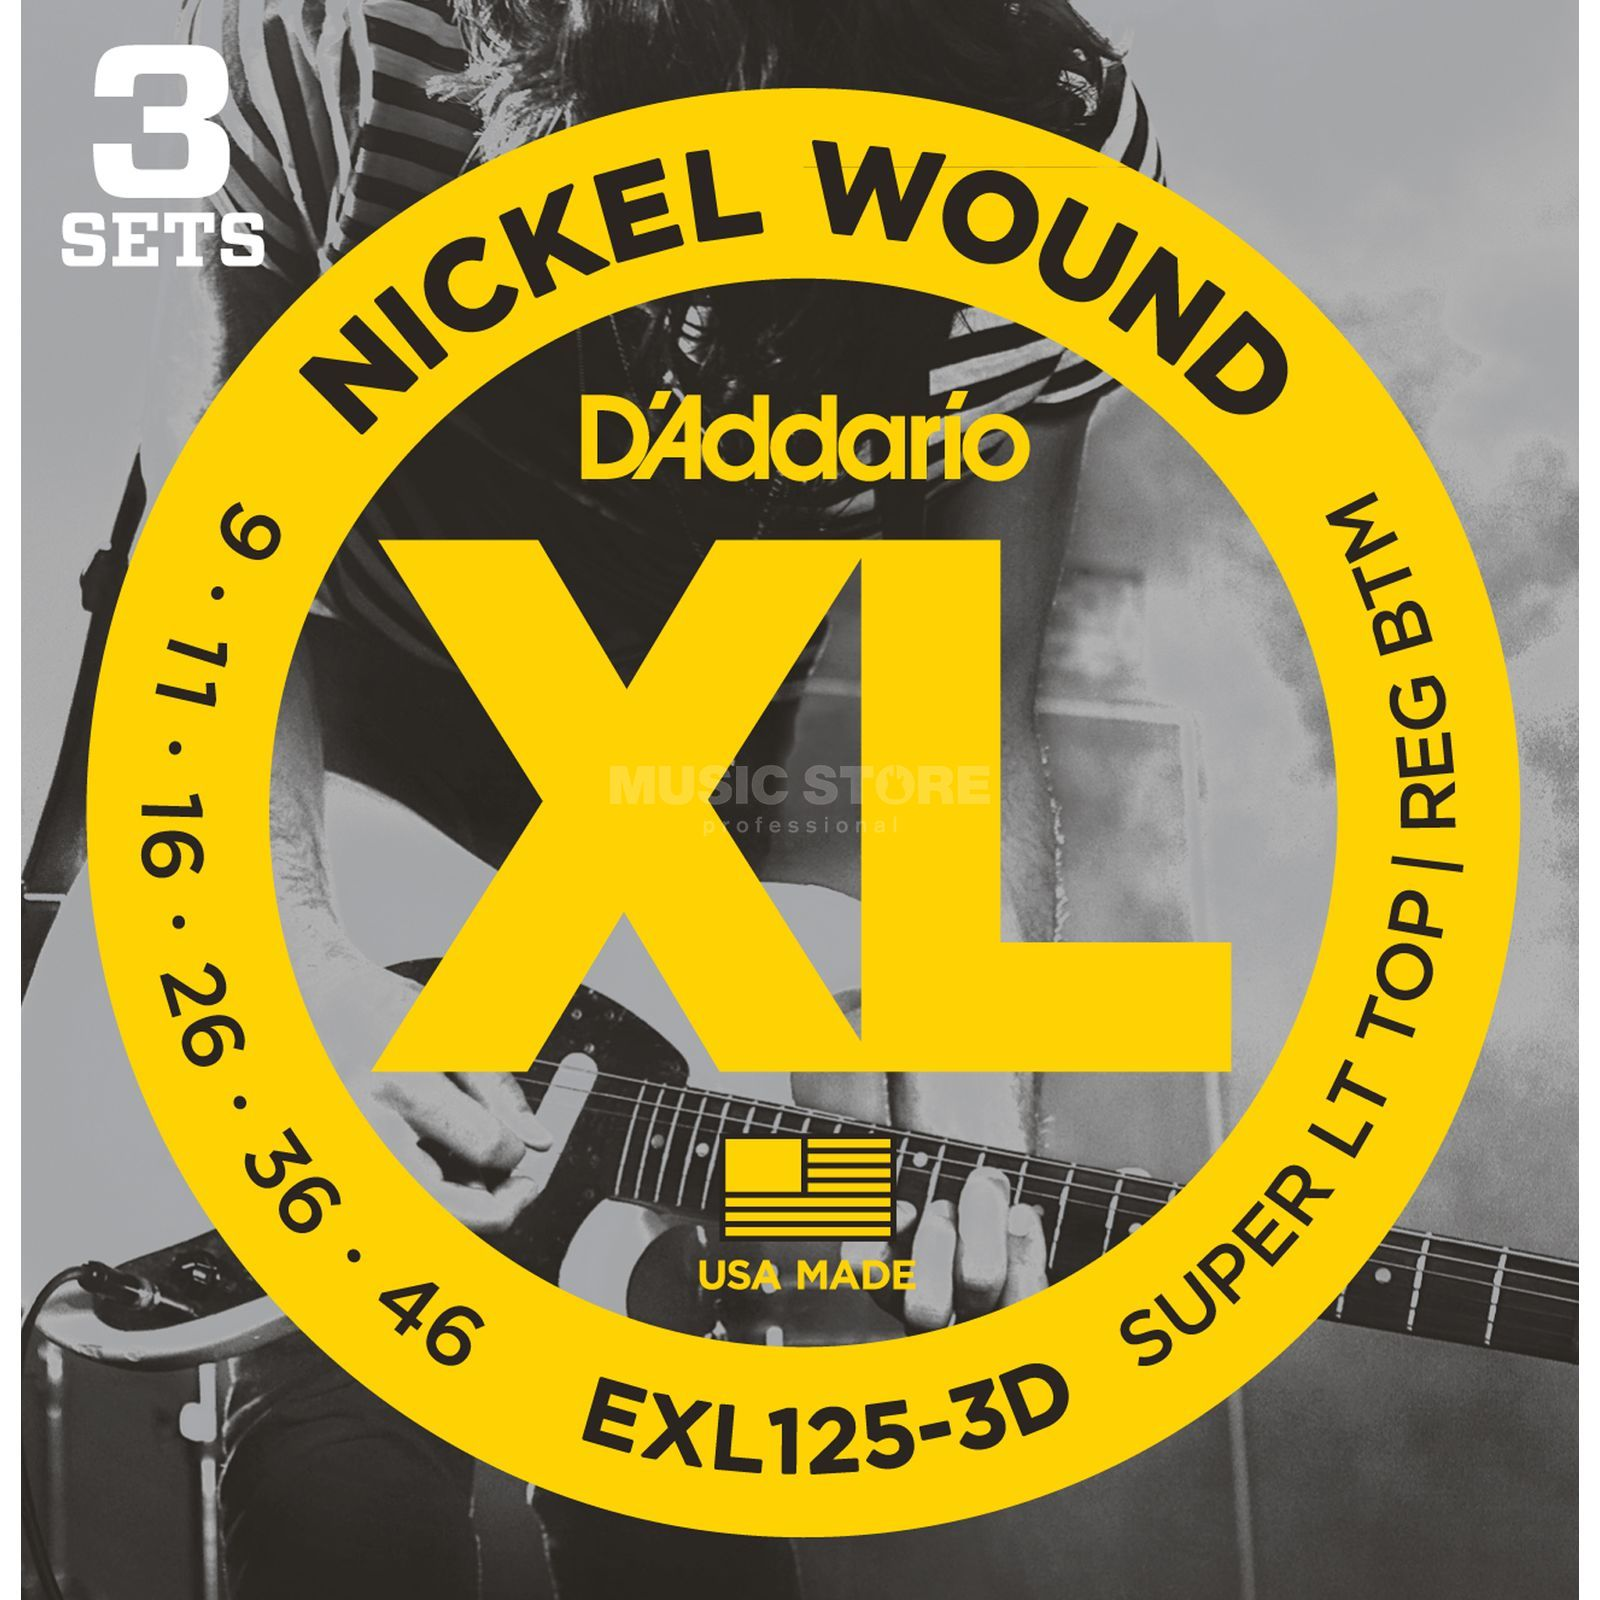 D'Addario E-Guit.Strings EXL125-3D 09-46 Nickel Wound 3 Sets Produktbillede